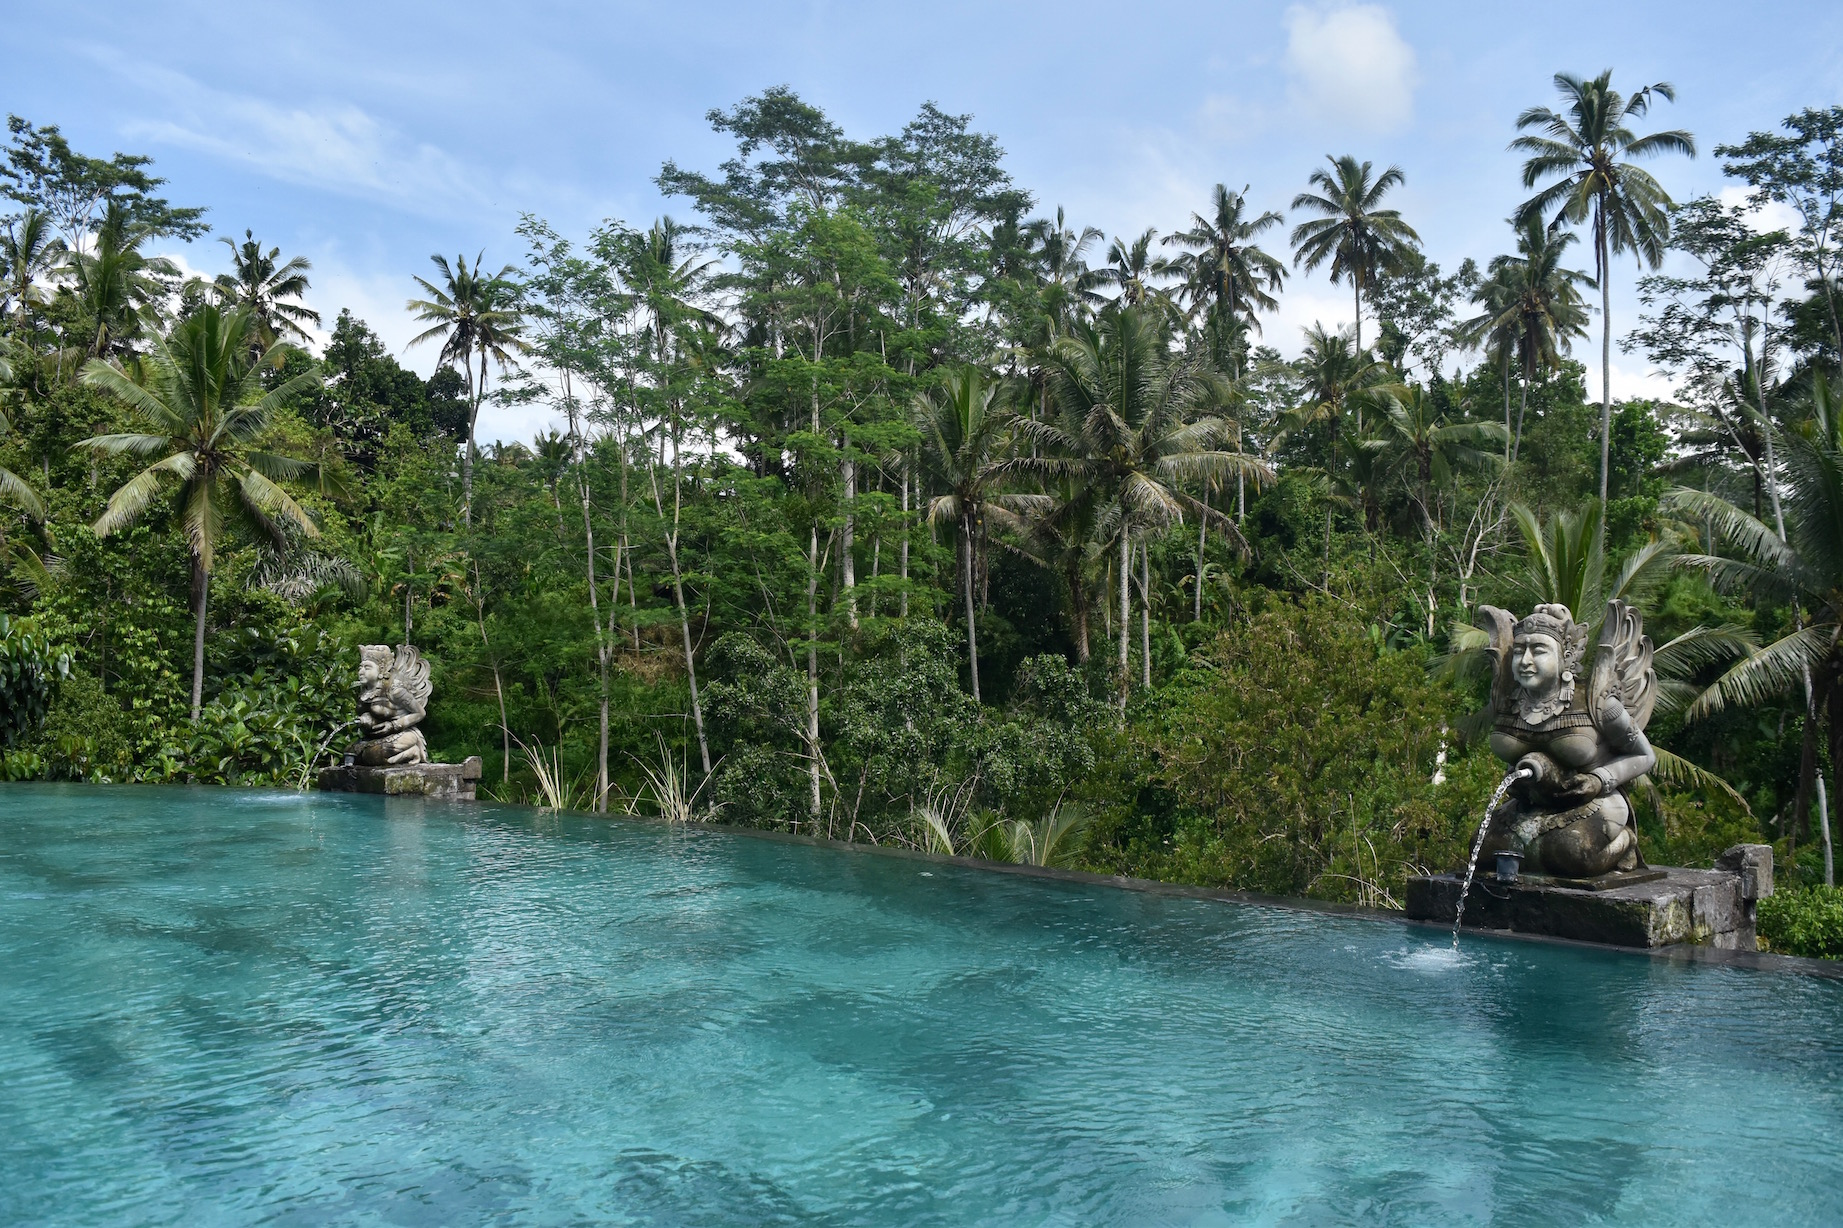 The Kayon Resort In Ubud Bali Complete Review With Pictures